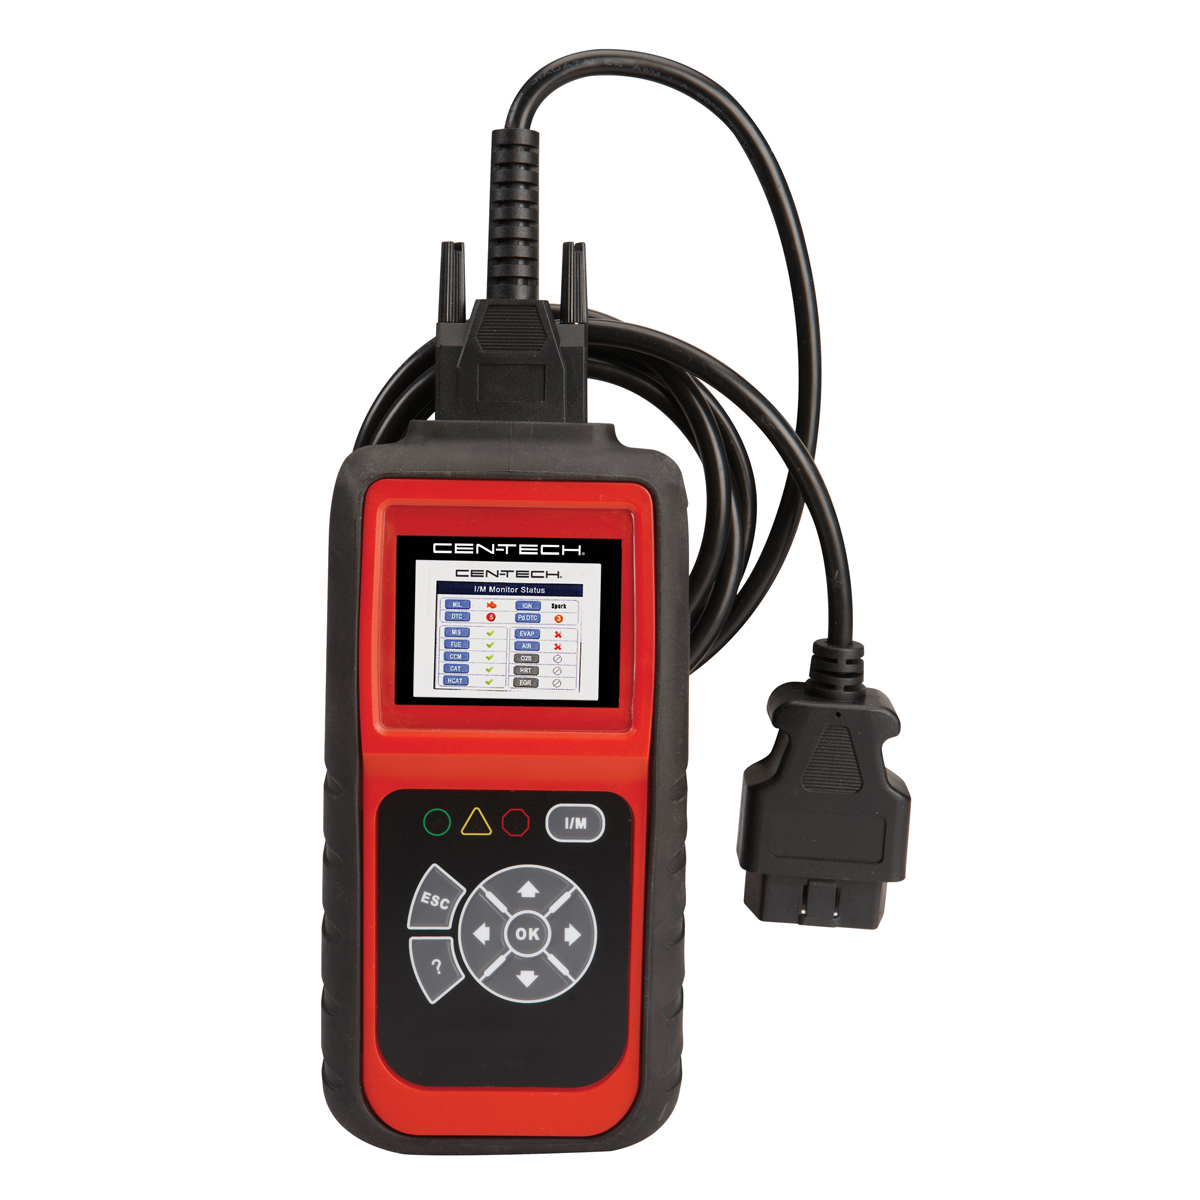 Professional Obdii Scan Tool